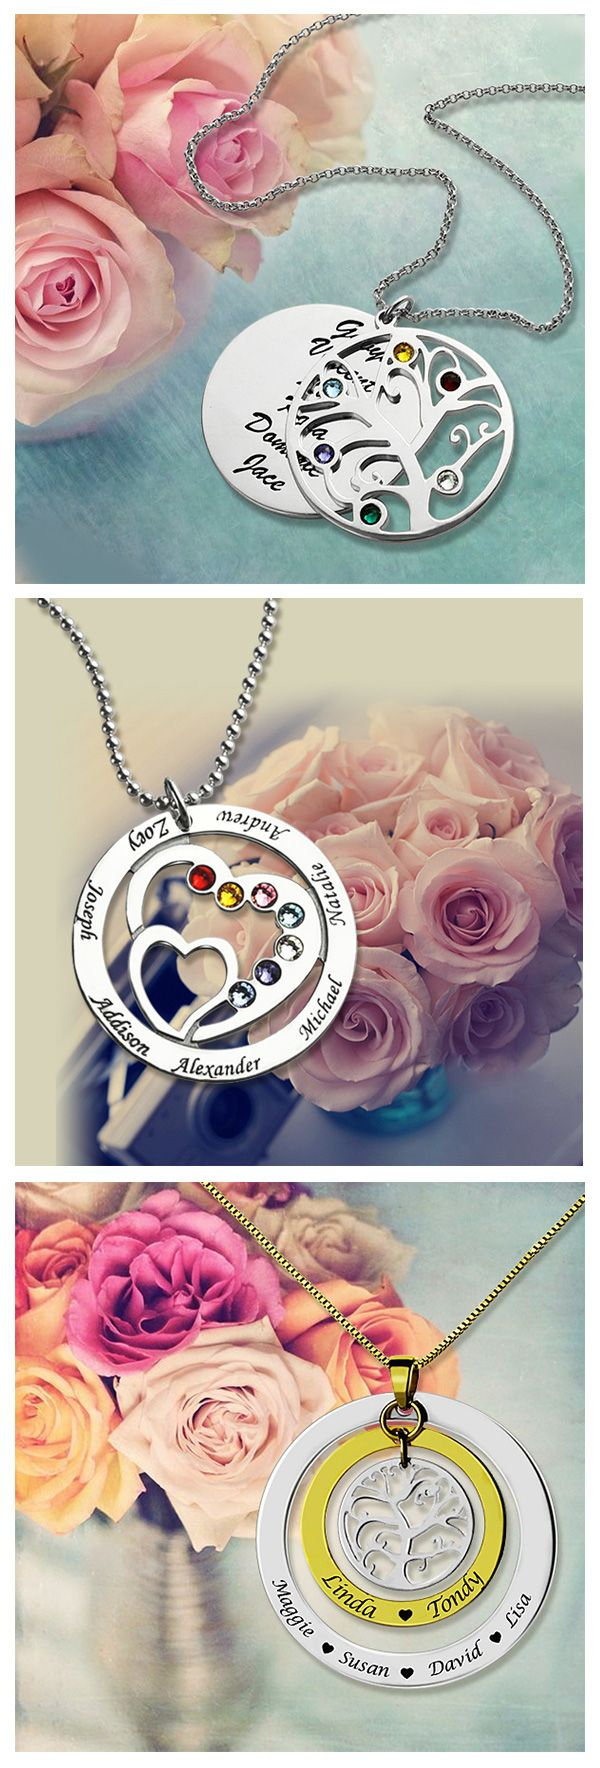 Give your wonderful grandmother or mother a  personalized family necklace, show her just how much she is appreciated with these heartfelt gifts! Find more at Getnamenecklace.com